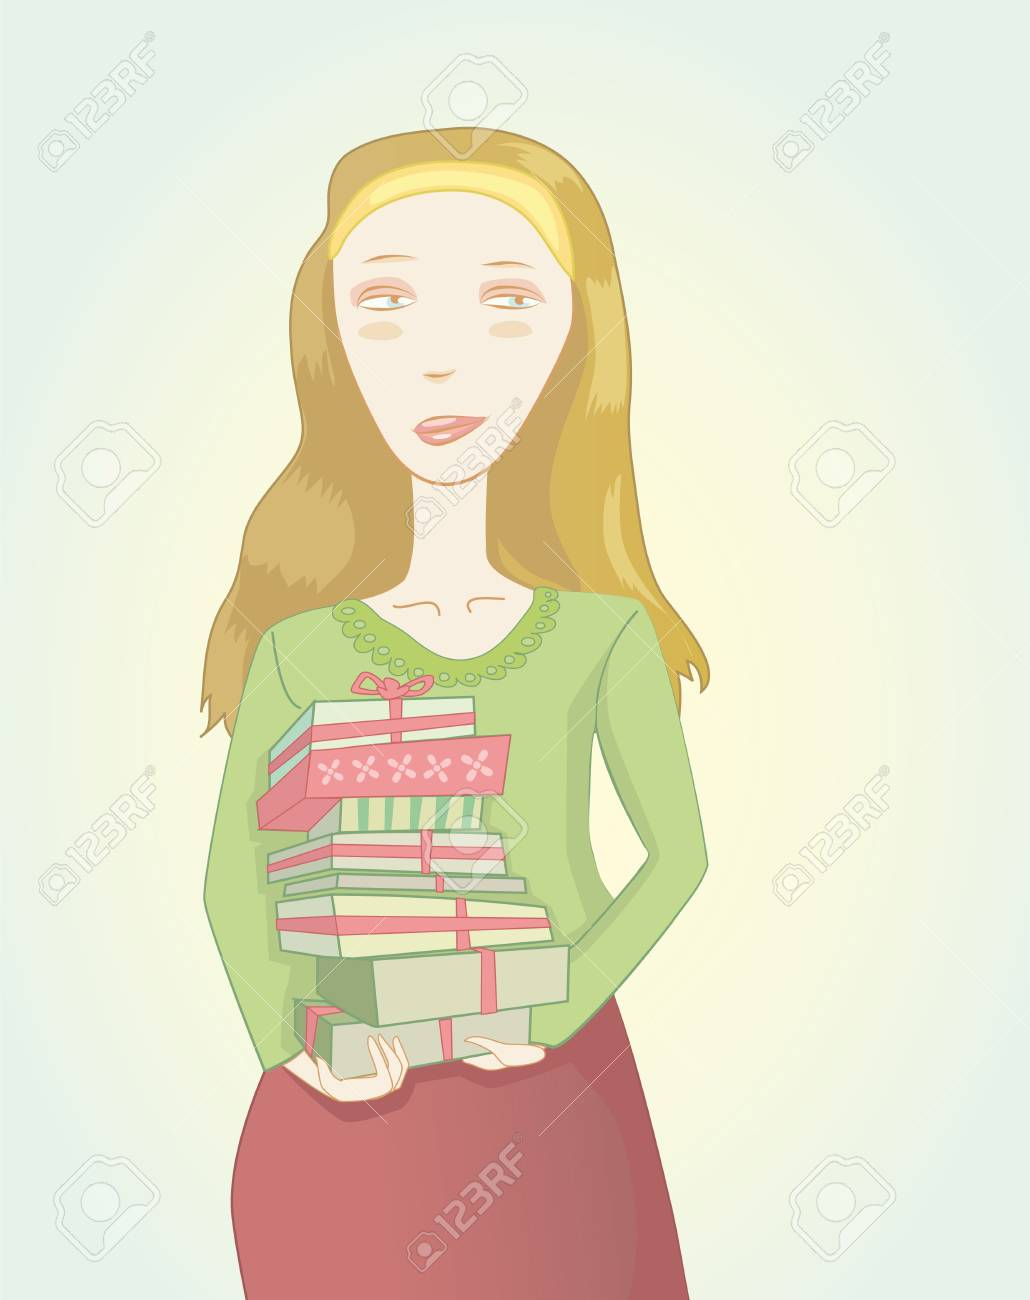 Illustraton of the girl with gift boxes in hands Stock Vector - 9548509